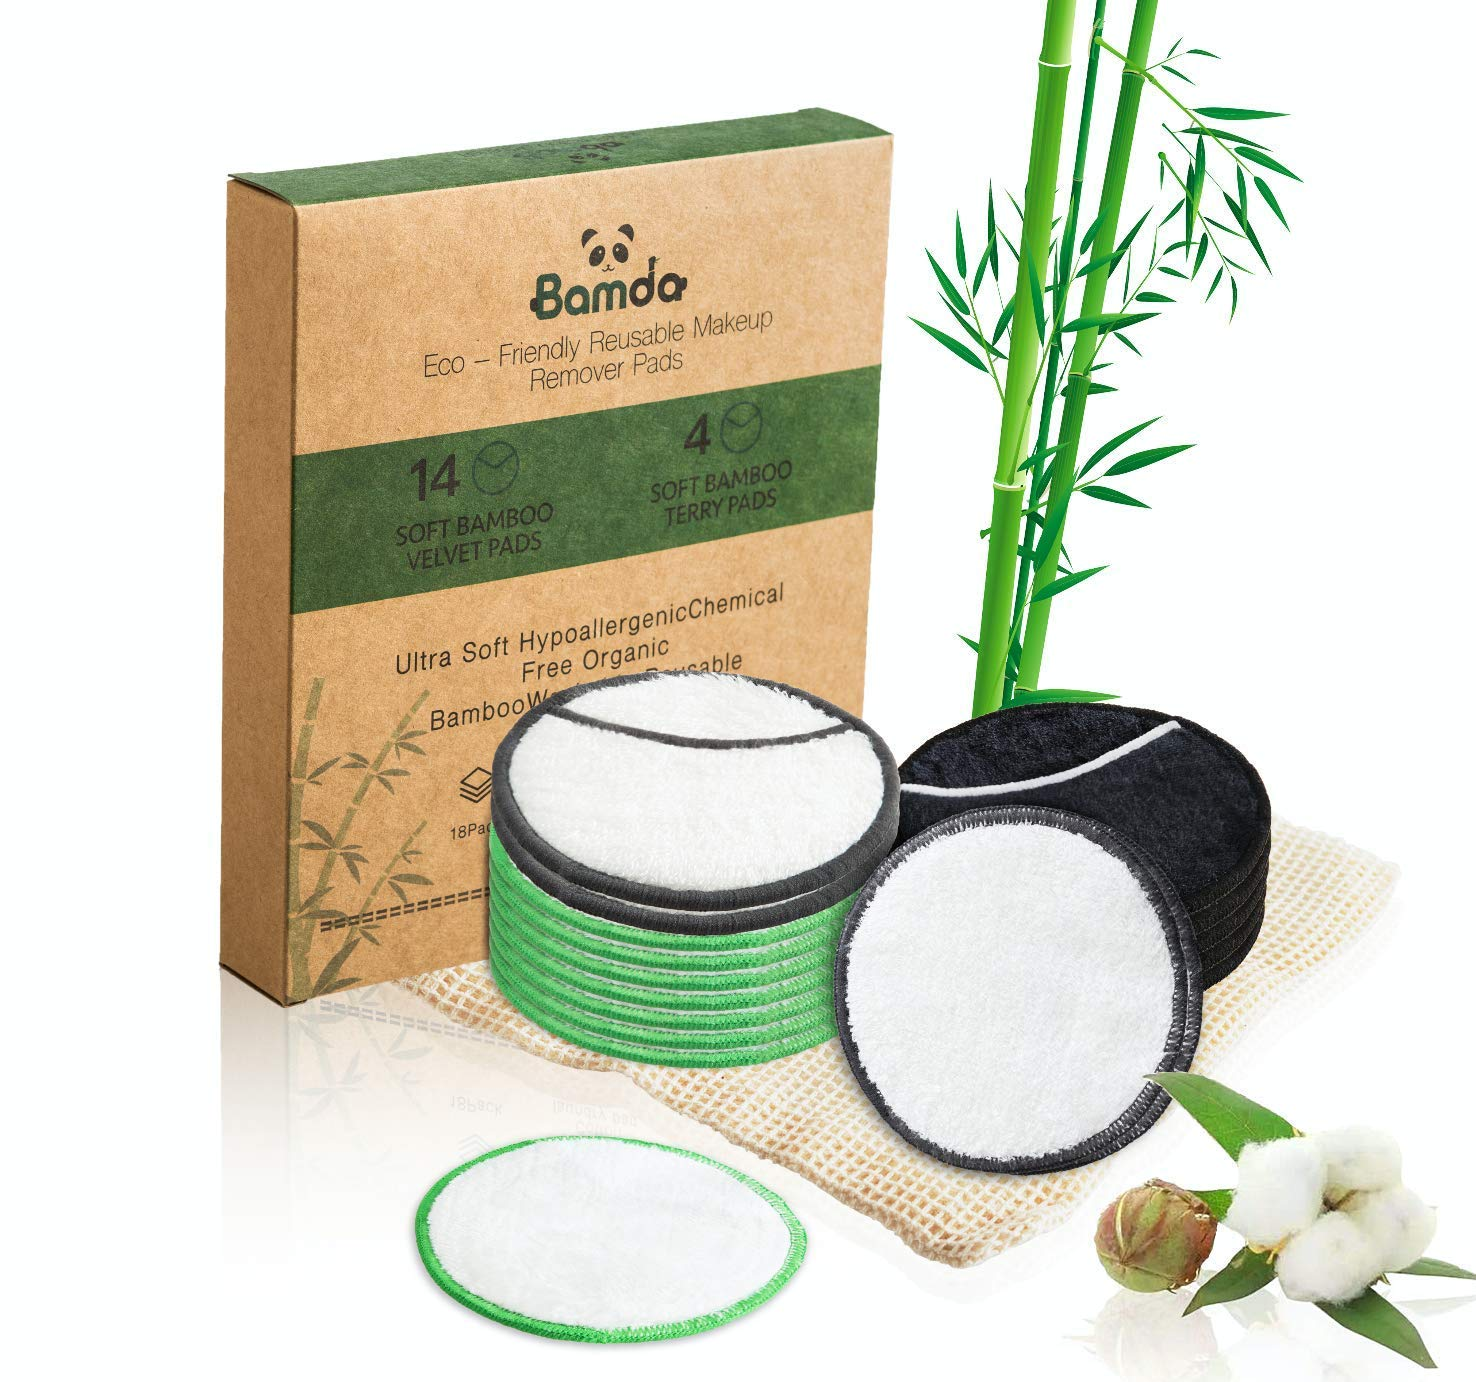 Reusable Makeup Remover Pads - 18 Pcs Organic Bamboo Cotton Rounds with Lanudry bag, 3 Colours & 2 Types | Bamda Zero Waste Make Up Removal Pads for All Skin Types